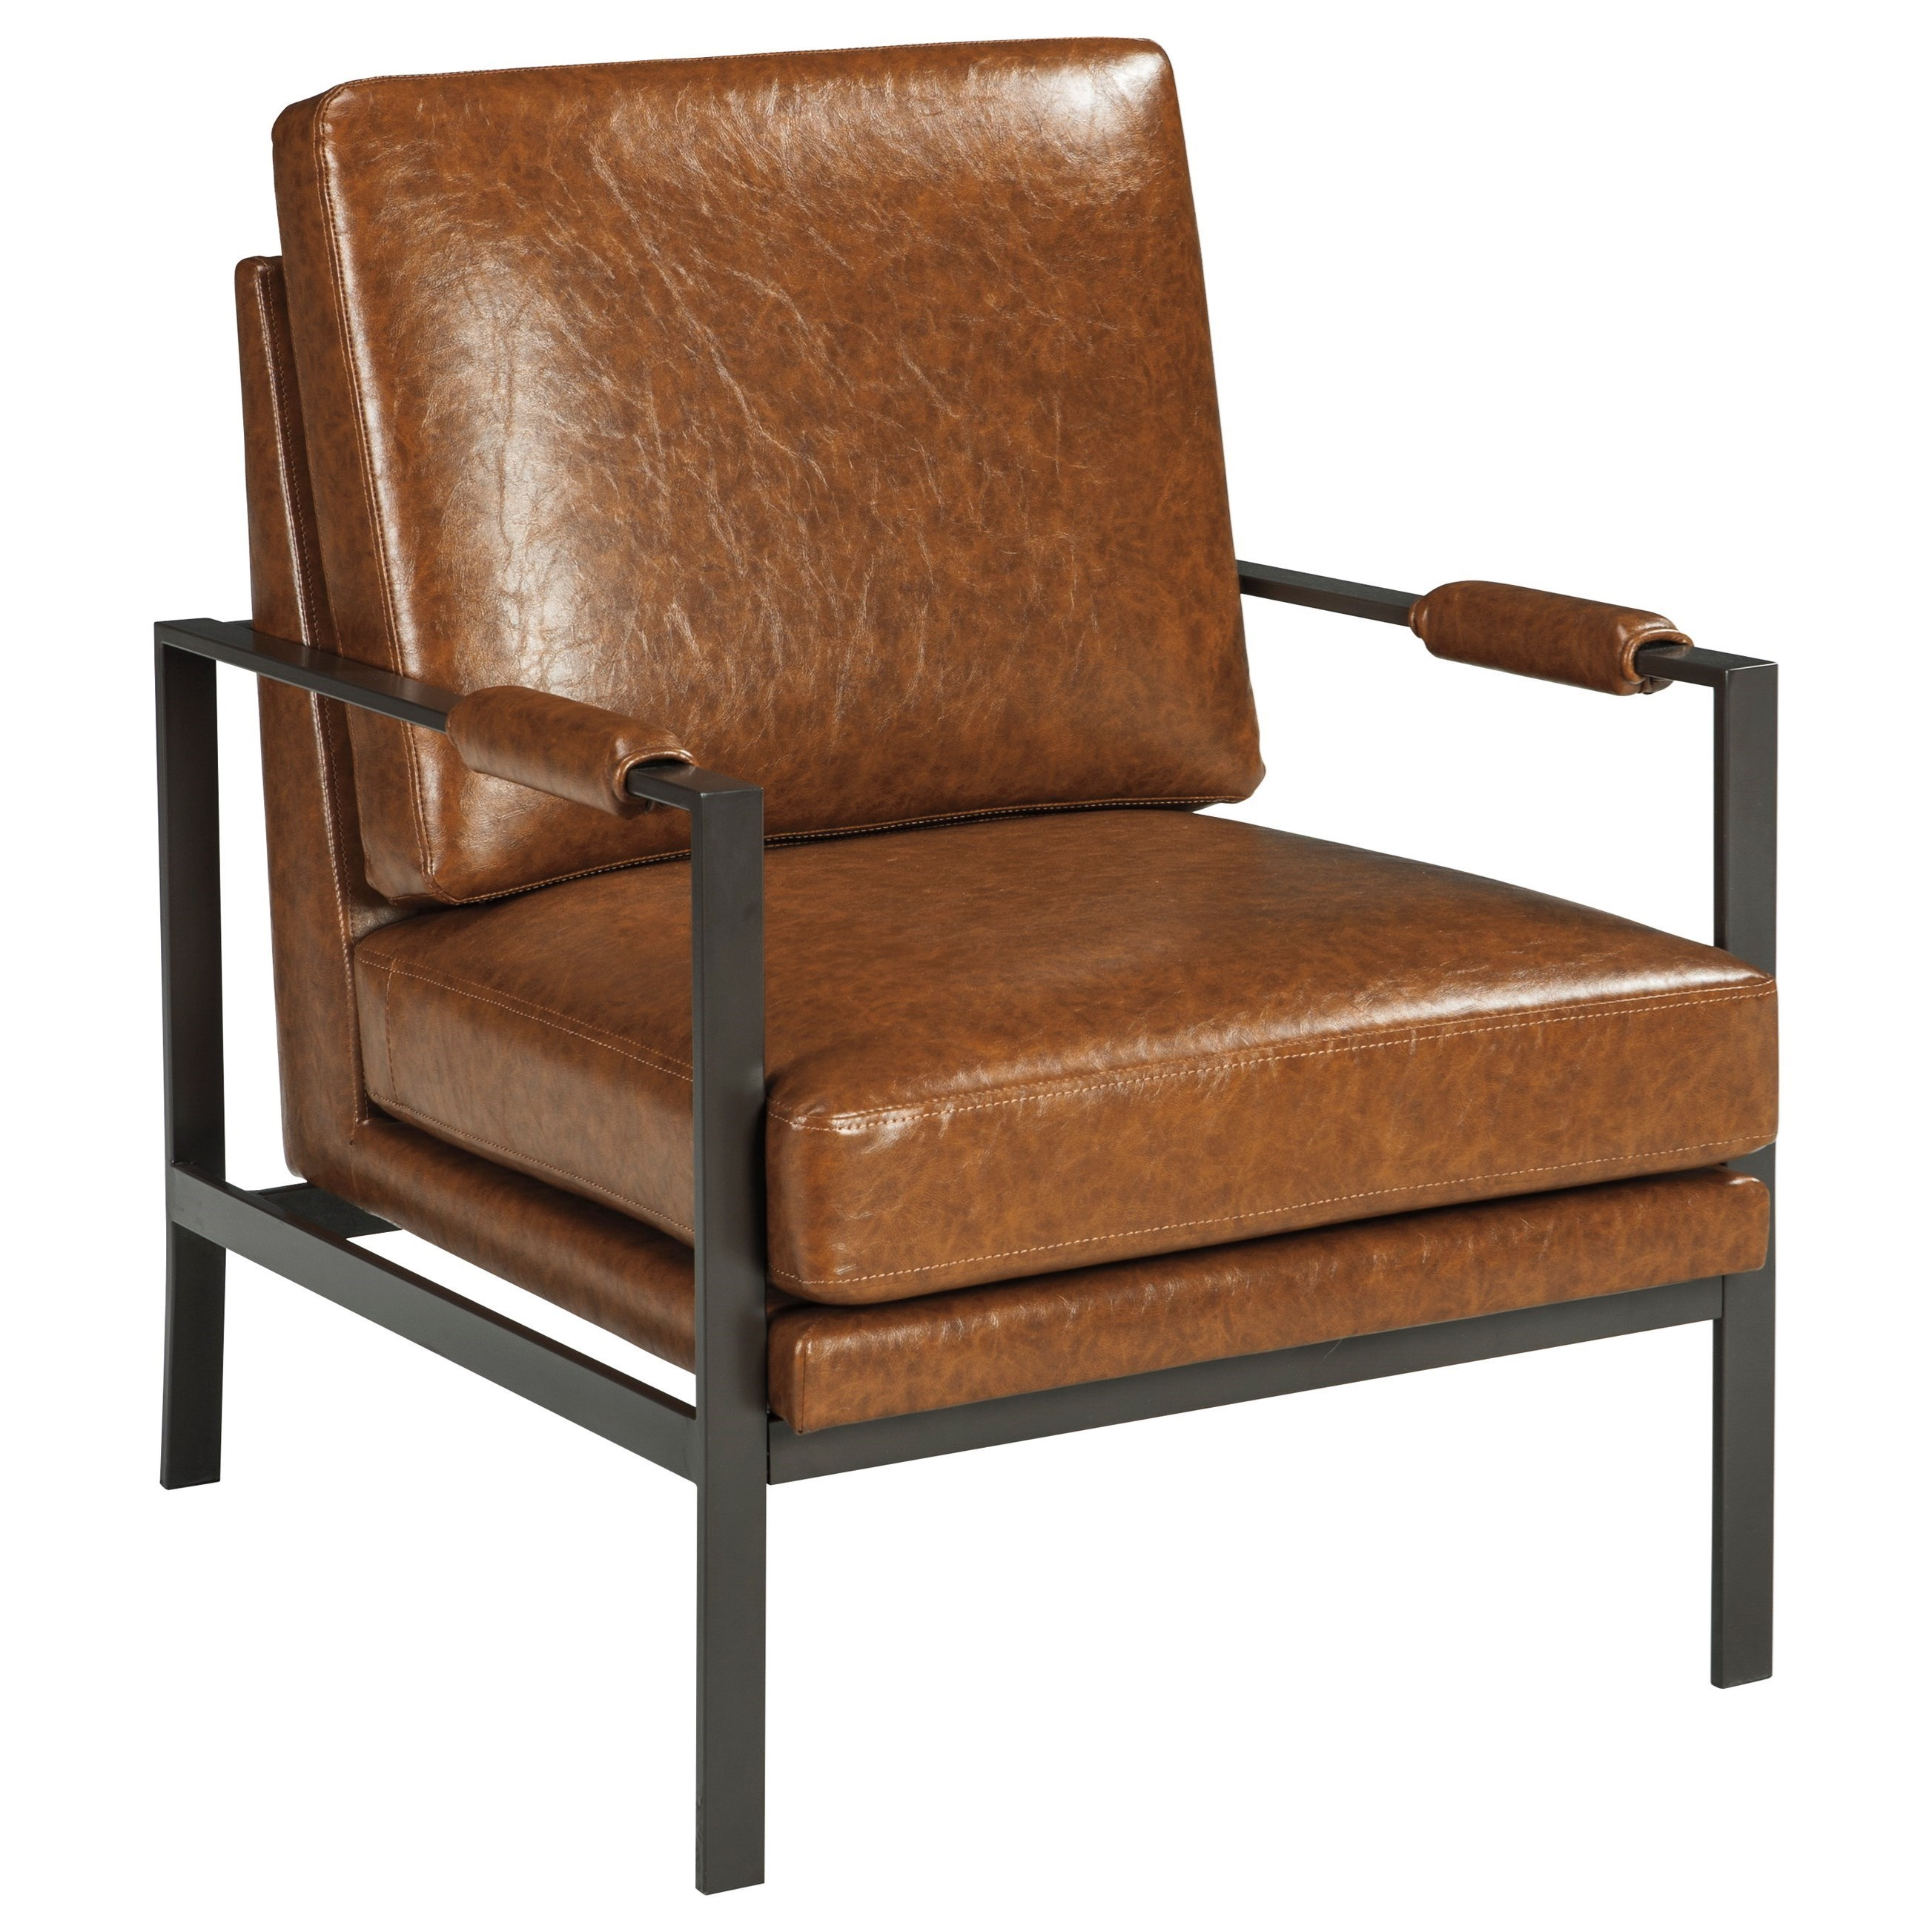 Ashley Chairs Peacemaker Dark Bronze Finish Metal Arm Accent Chair With Light Brown Faux Leather By Signature Design By Ashley At Royal Furniture